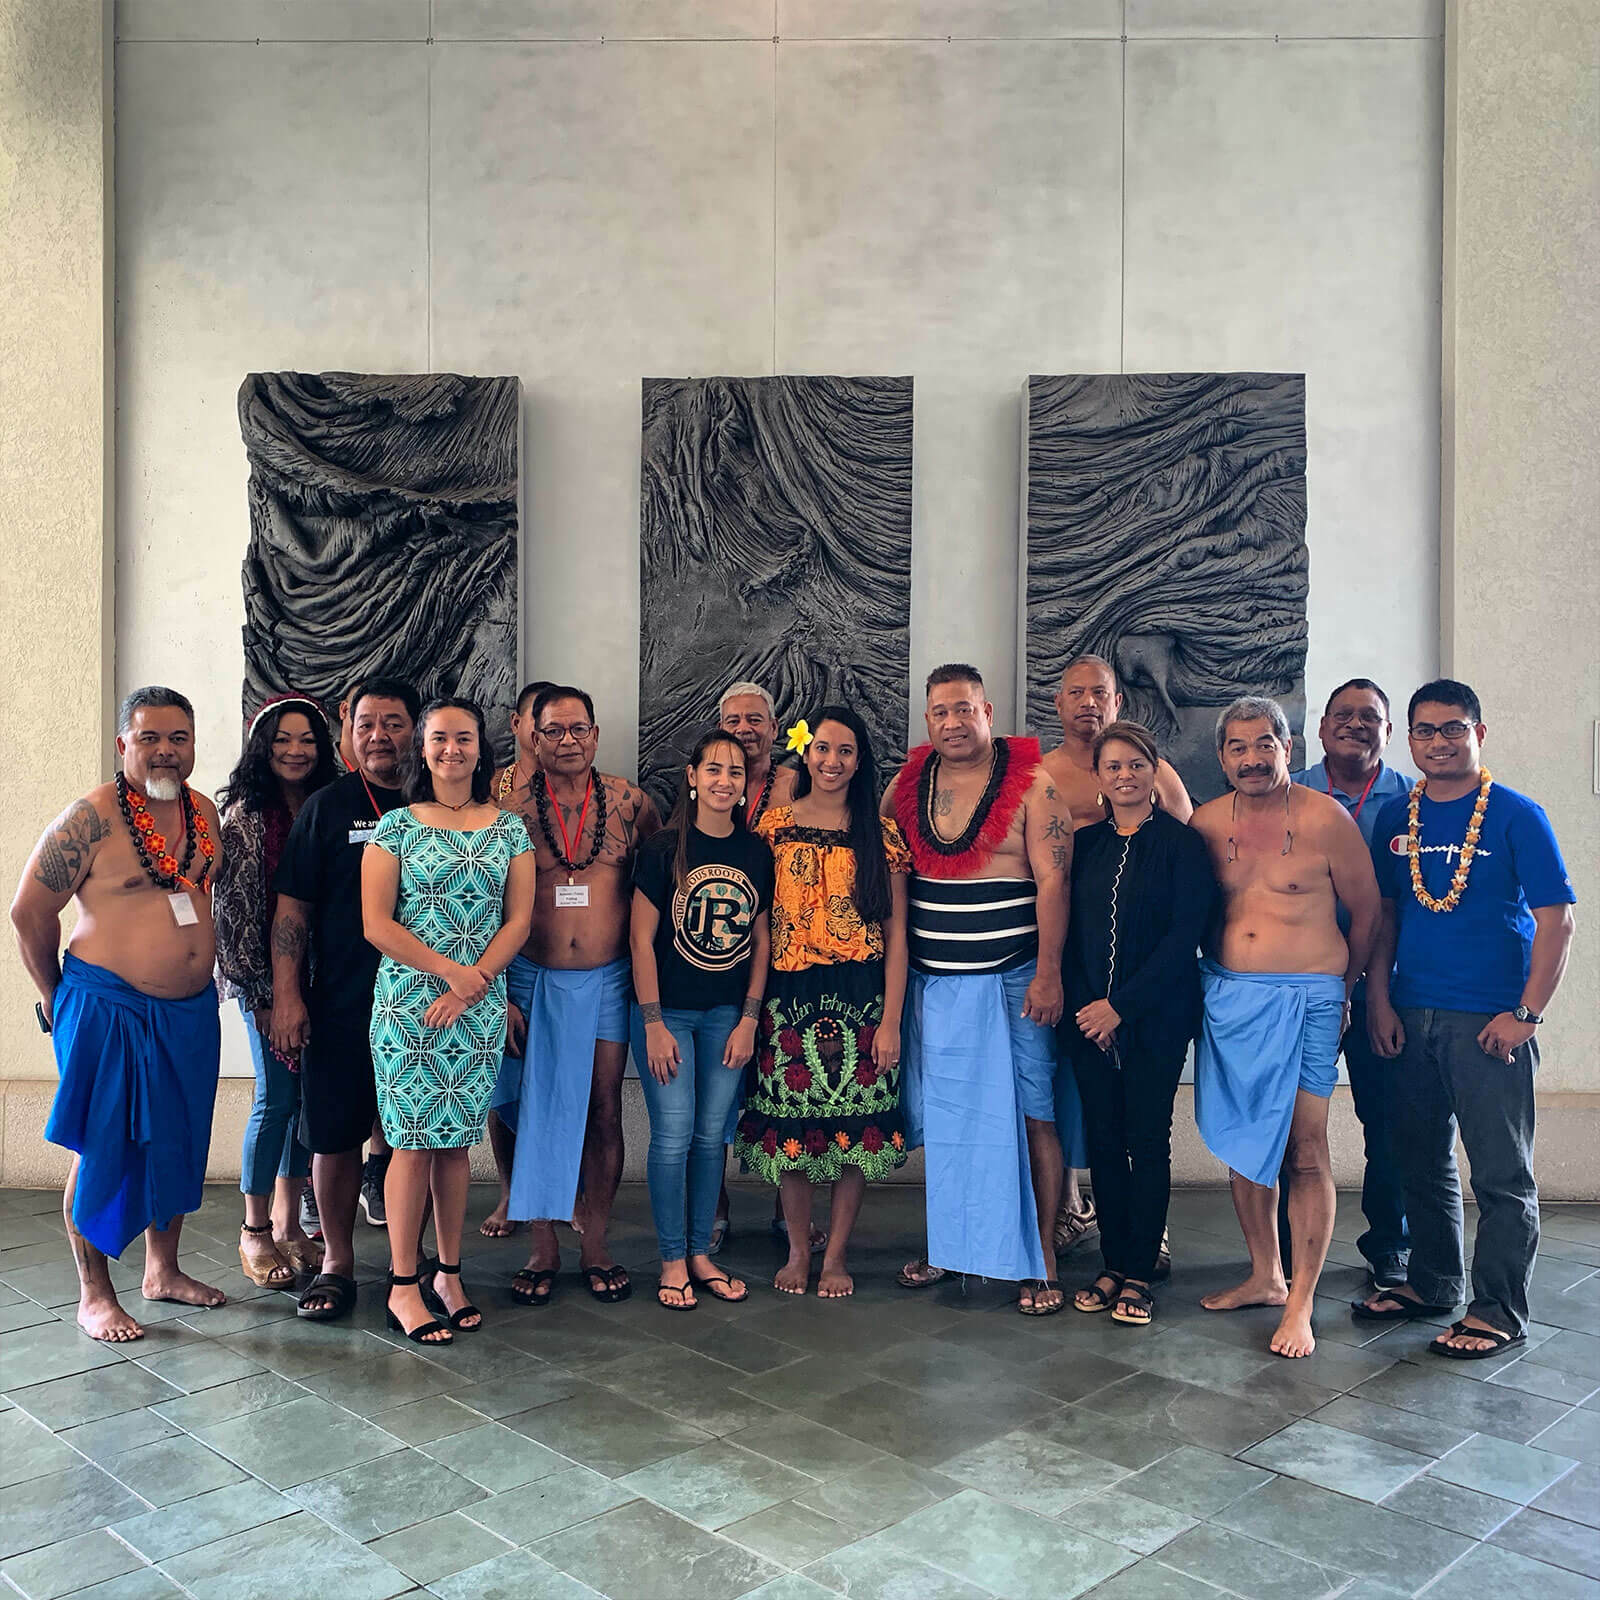 Group of people in front of artwork